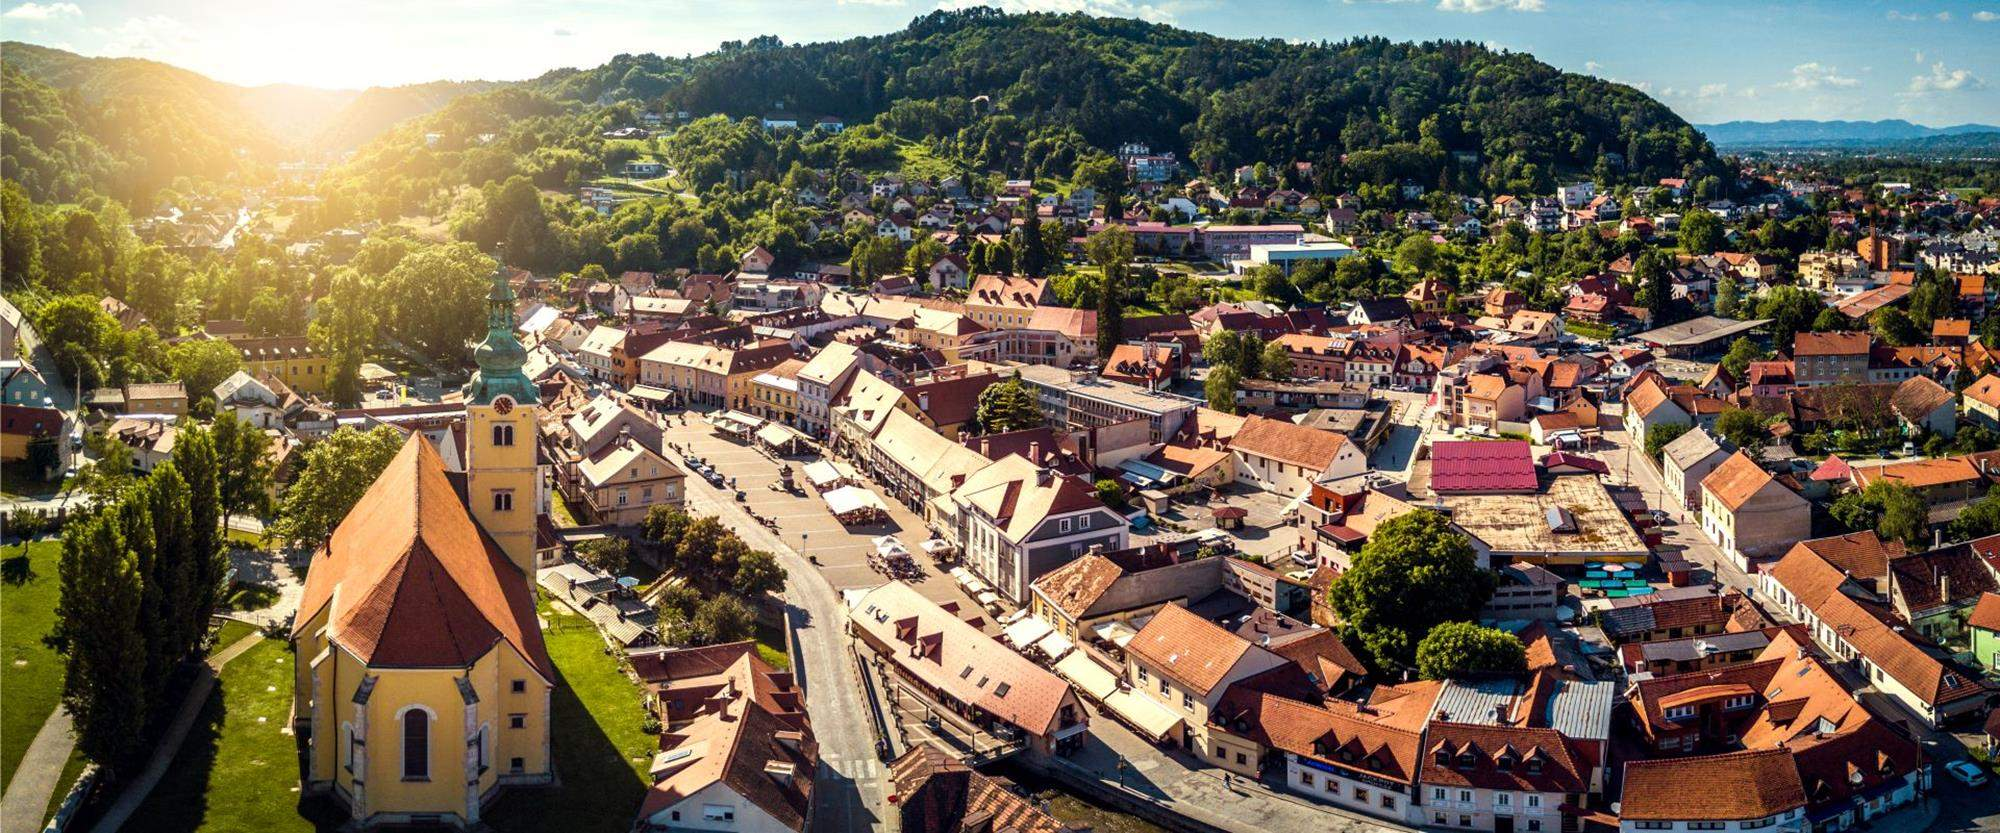 Samobor - destination for nature lovers